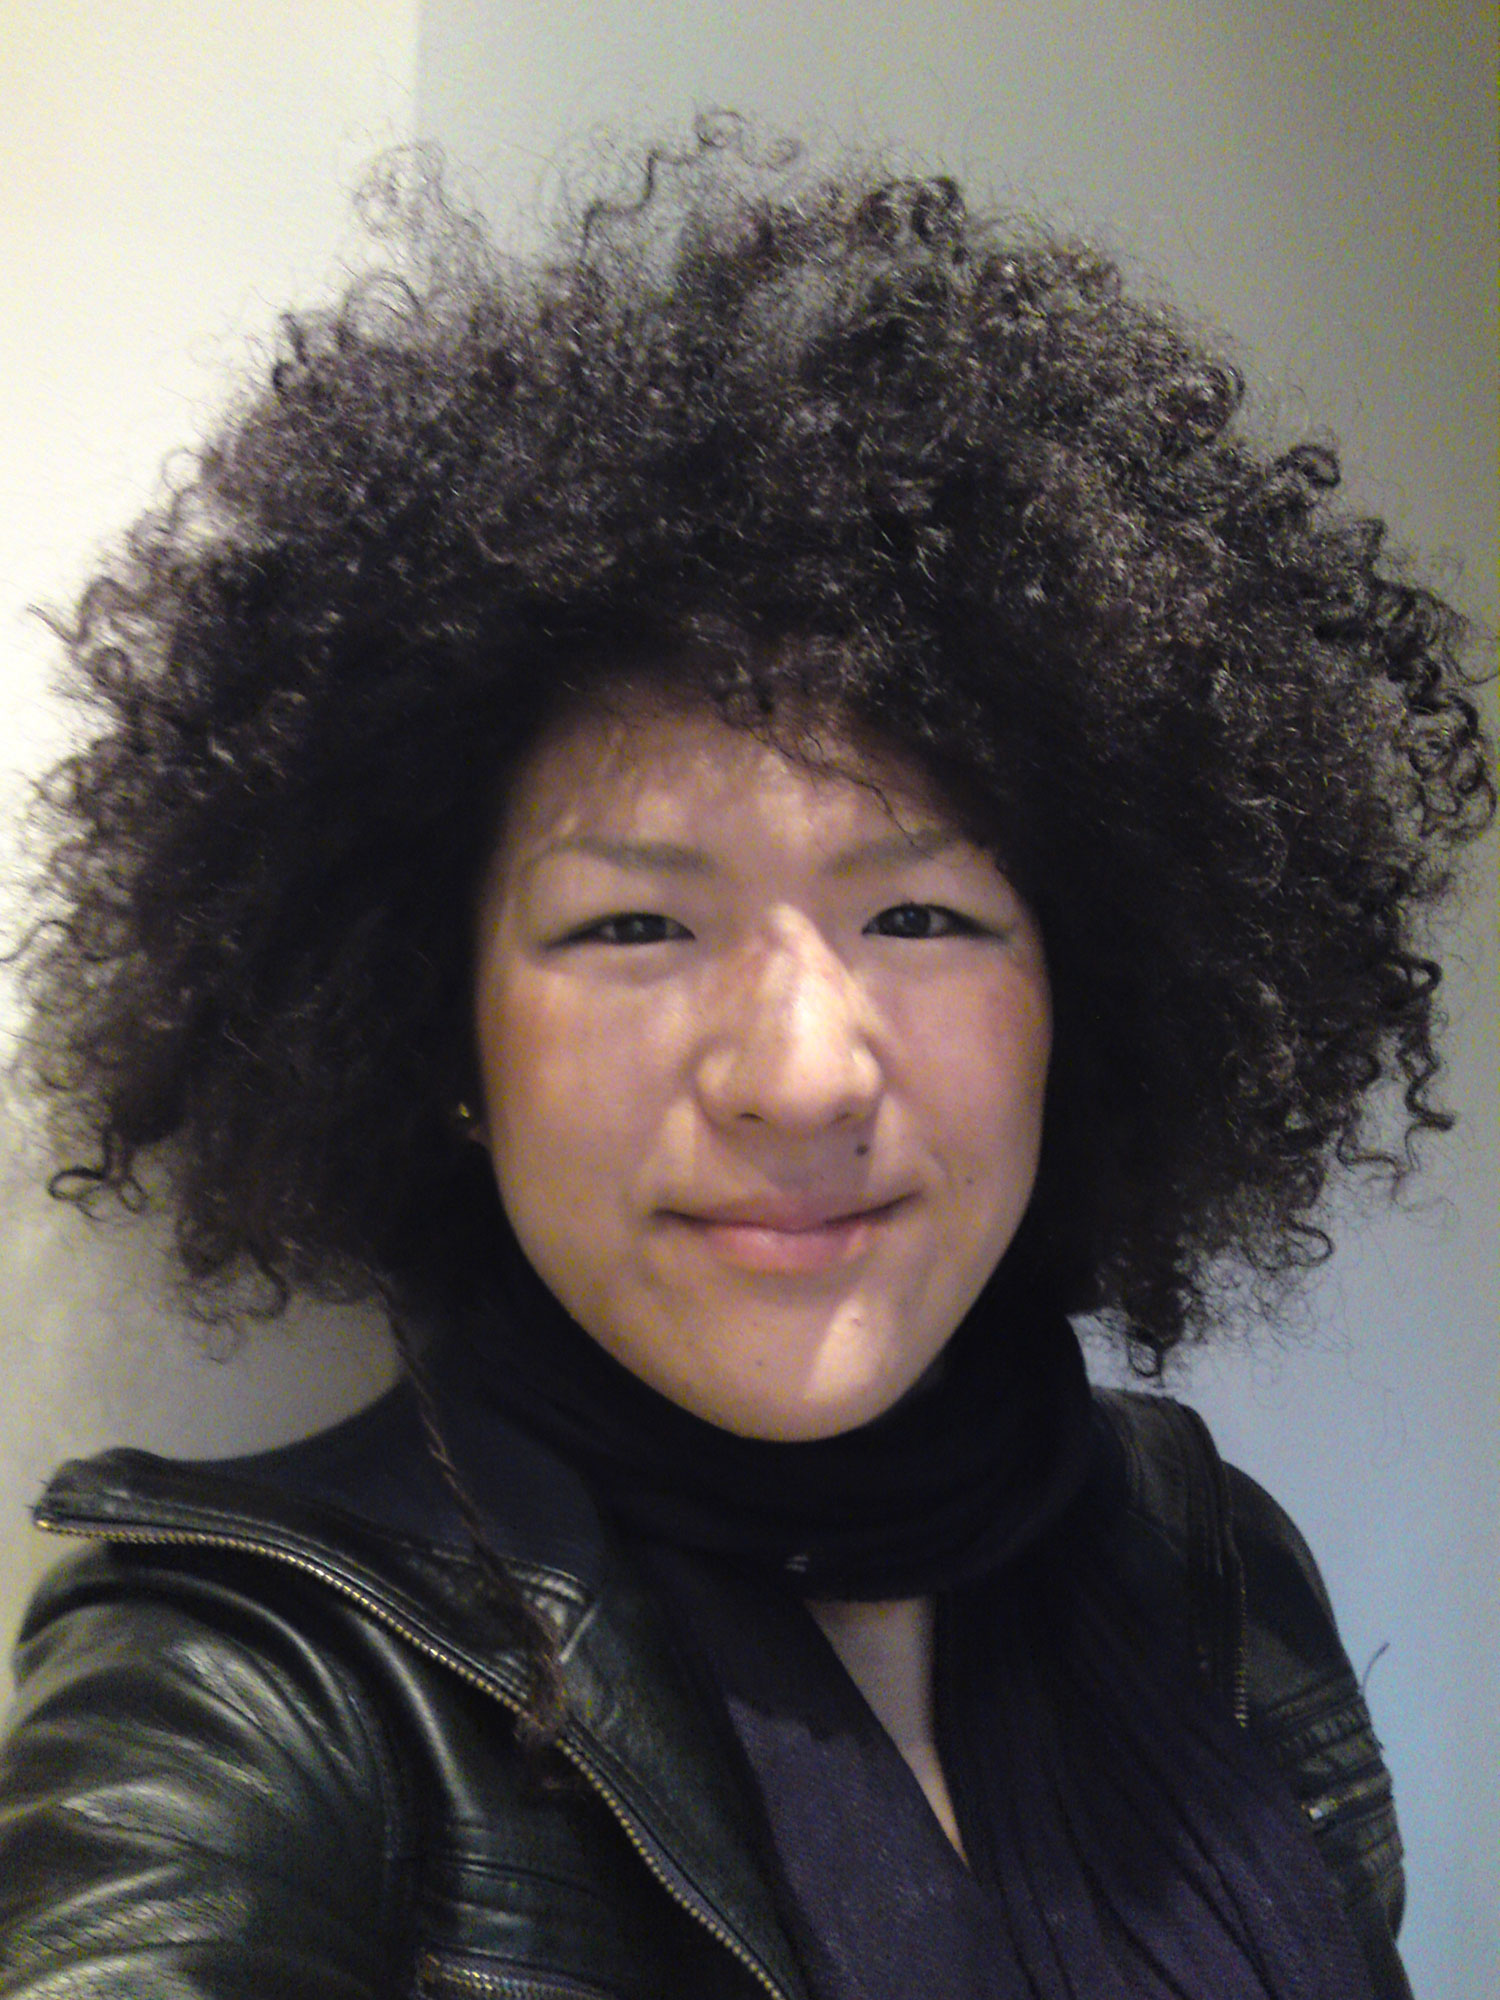 A selfie taken by a woman of East Asian descent with big hair wearing a black scarf and leather jacket.